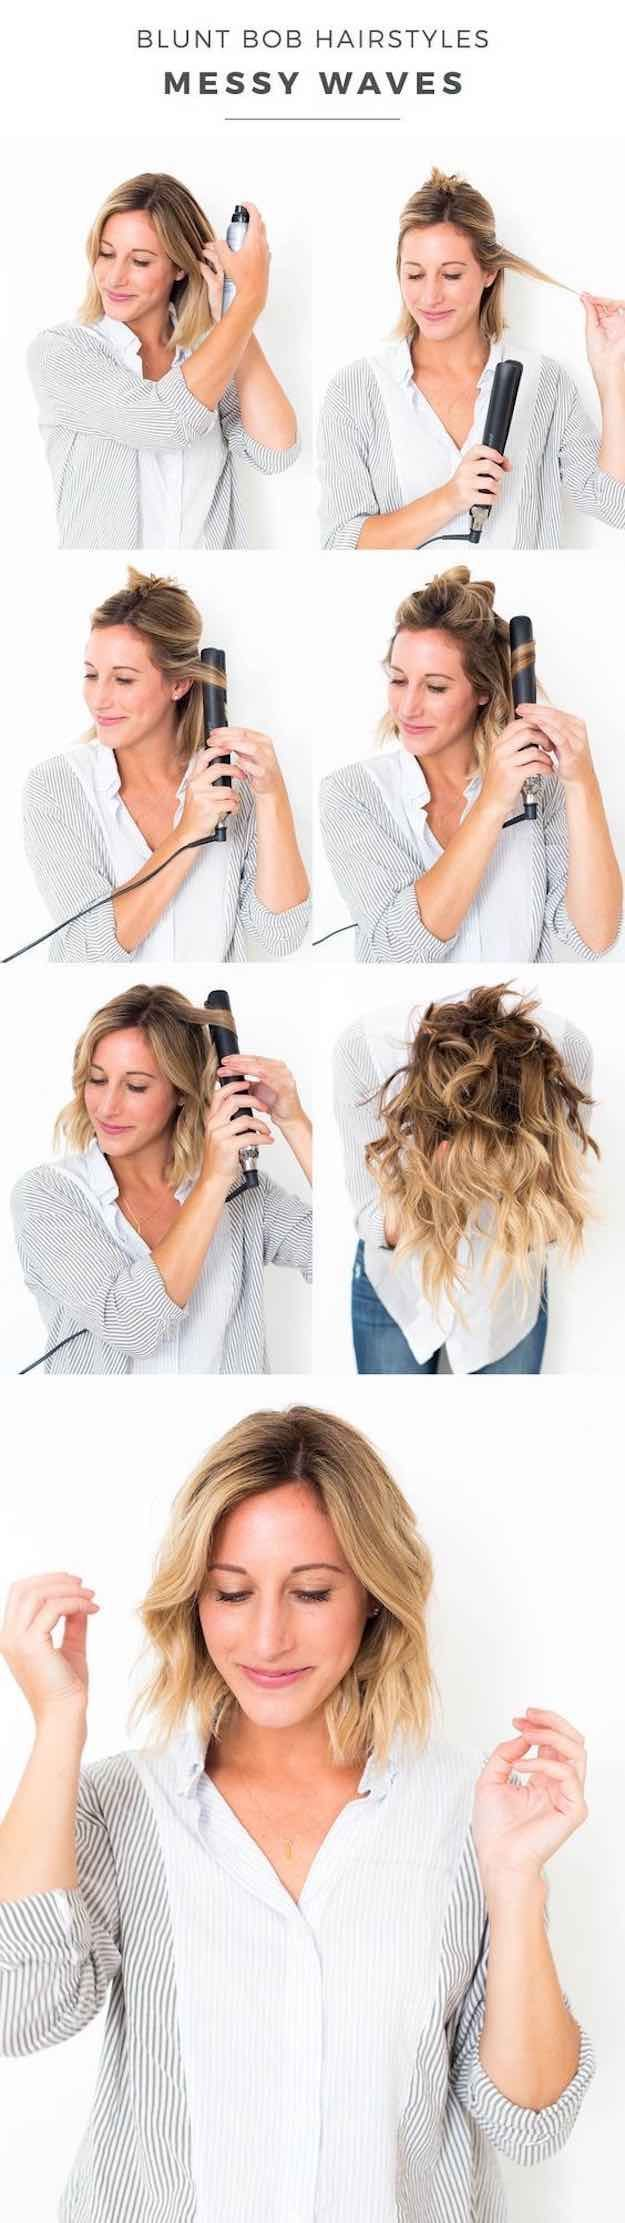 41 Lob Haircut Ideas For Women - BLUNT BOB HAIRSTYLES: MESSY WAVES -What is a lob? Step by step easy tutorials on how to cut your hair for a lob haircut and amazing ideas for layered, and straight lobs. Ideas for lobs with bangs, thick hair, wavy and thin hair. For long hair and medium hair. For round faces and sharp features - thegoddess.com/lob-haircut-ideas-women #HairstylesForWomenWithRoundFaces